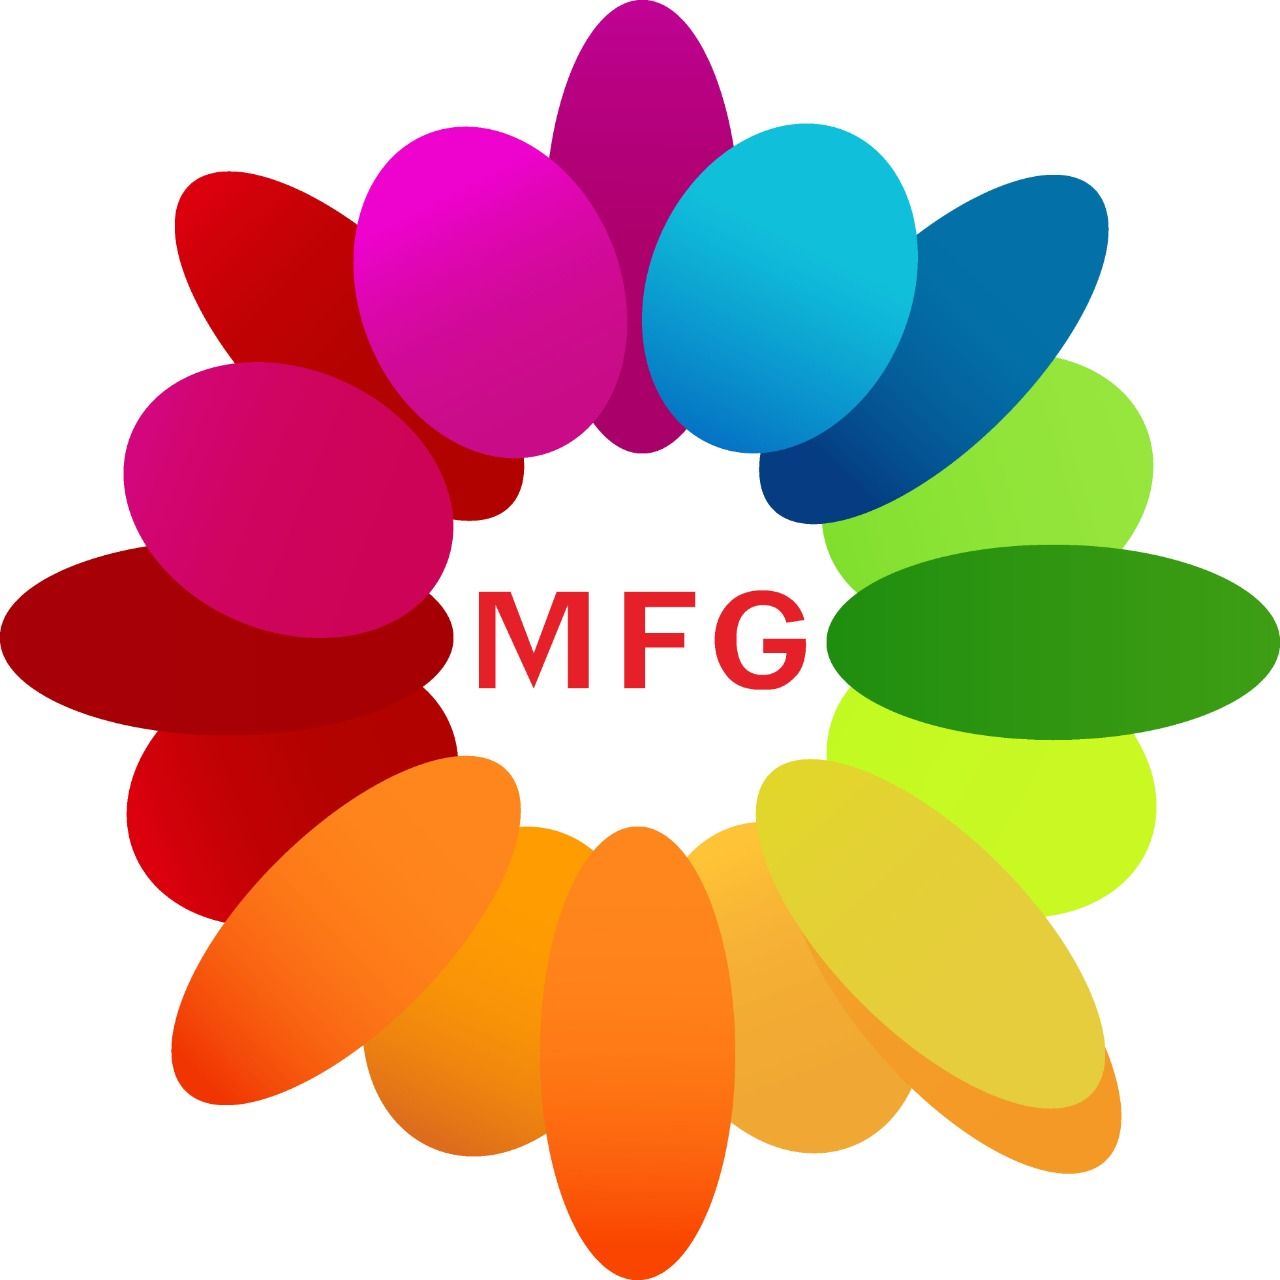 serenade ..special 2 days combo ,10 roses with 6 inch teddy bear, 10 roses with 1 pound chocolate cake